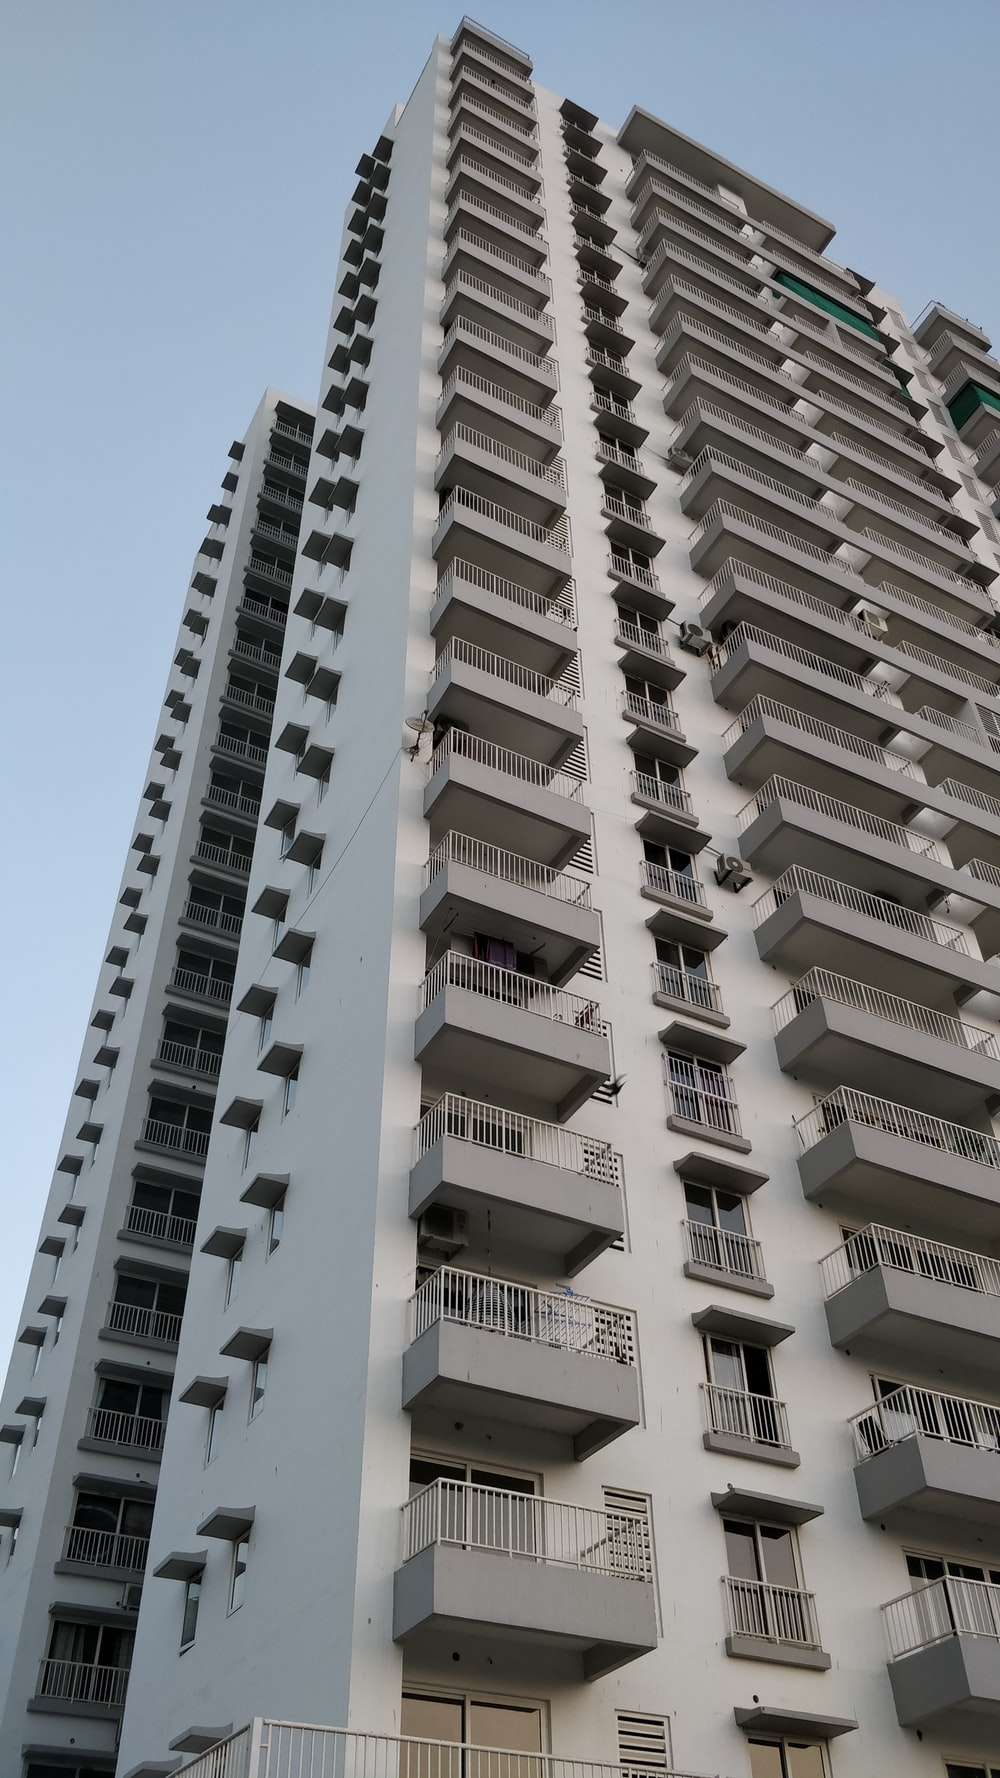 low-angle photography of white and gray concrete high-rise building